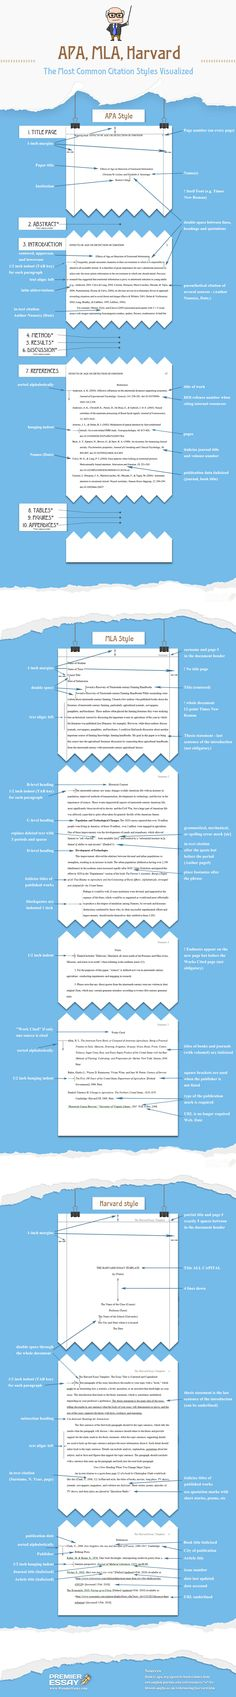 How to Write a Business Paper in APA Format